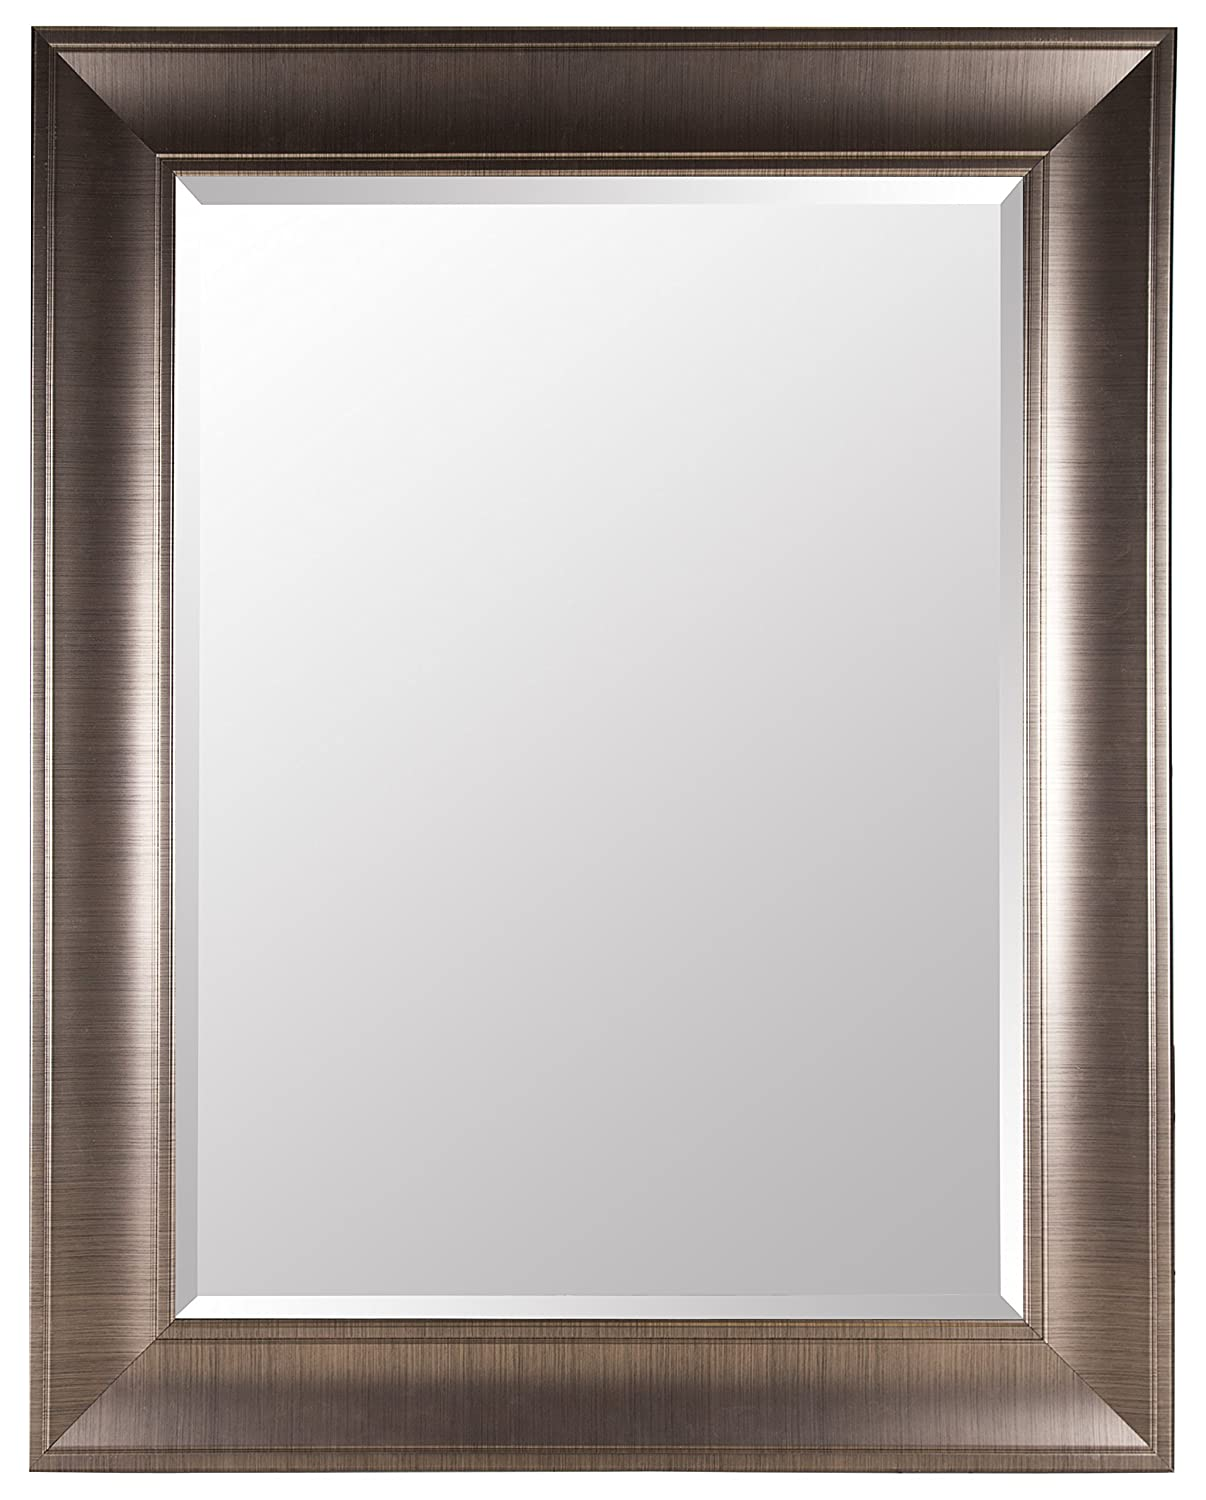 Gallery Solutions Large 39X49 Beveled Mirror with 5 Inch Frame In Brushed Nickel #16FP1799 Pinnacle Frames